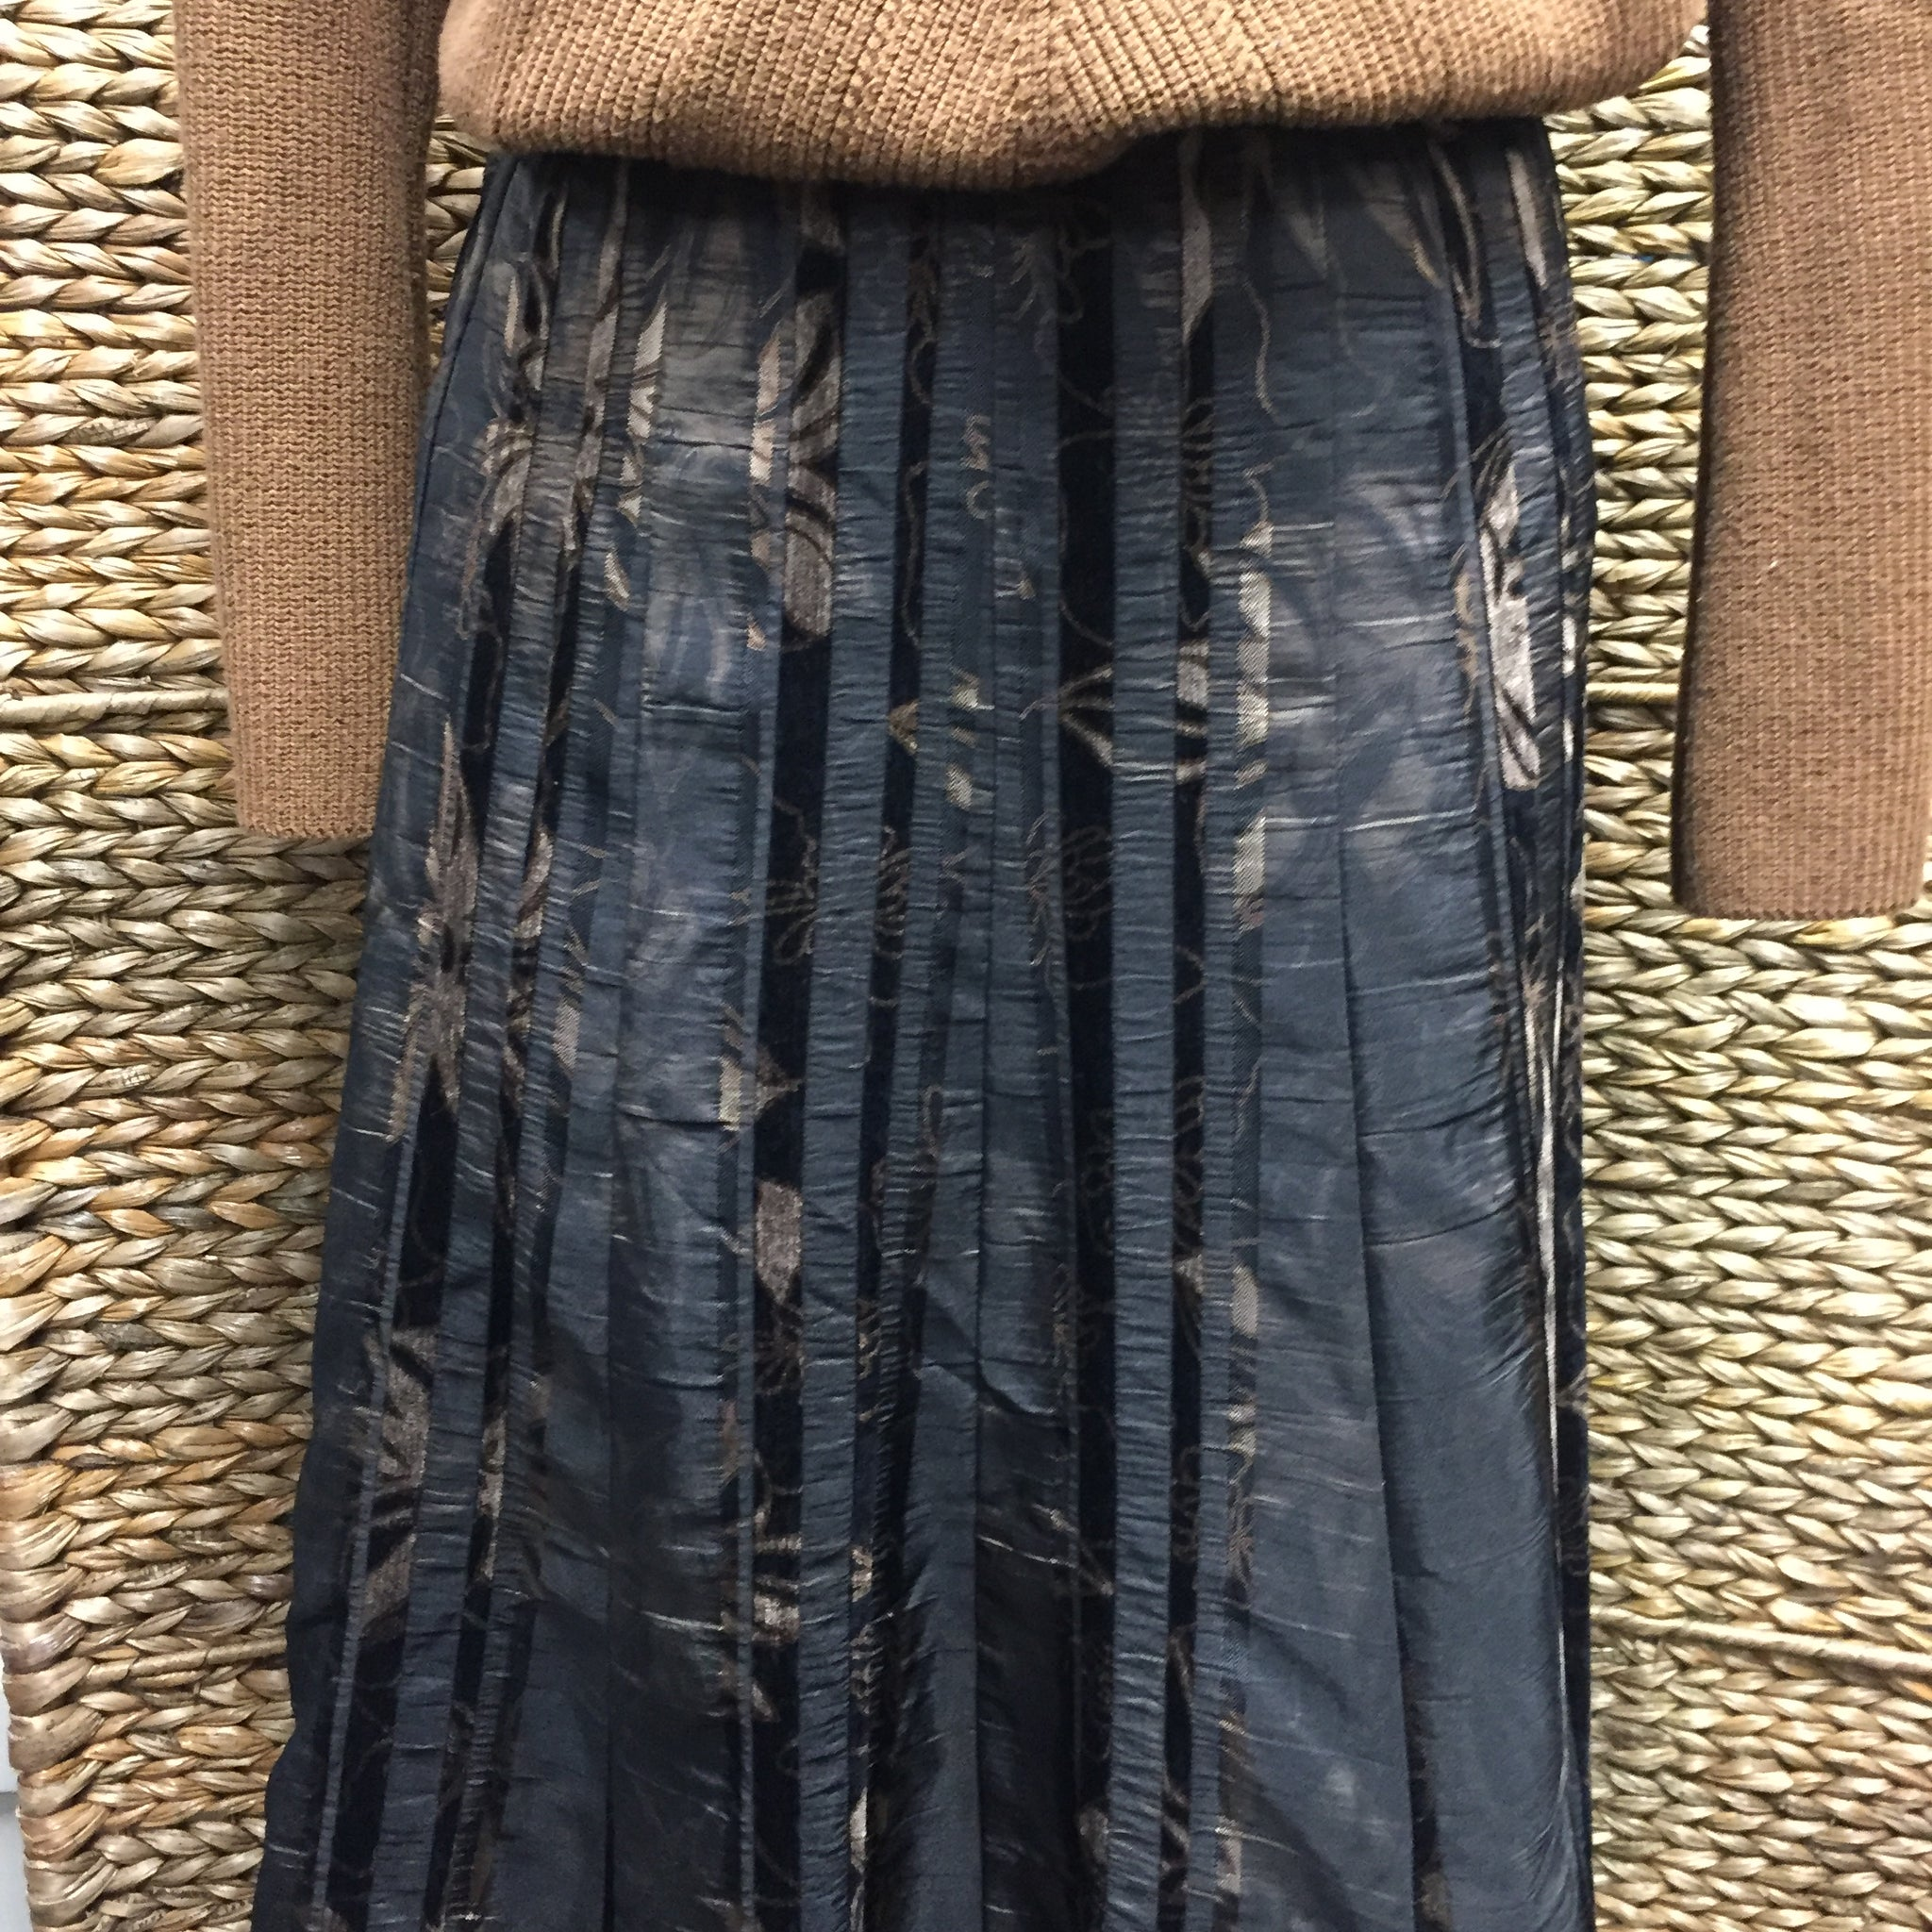 Coldwater Creek Skirt